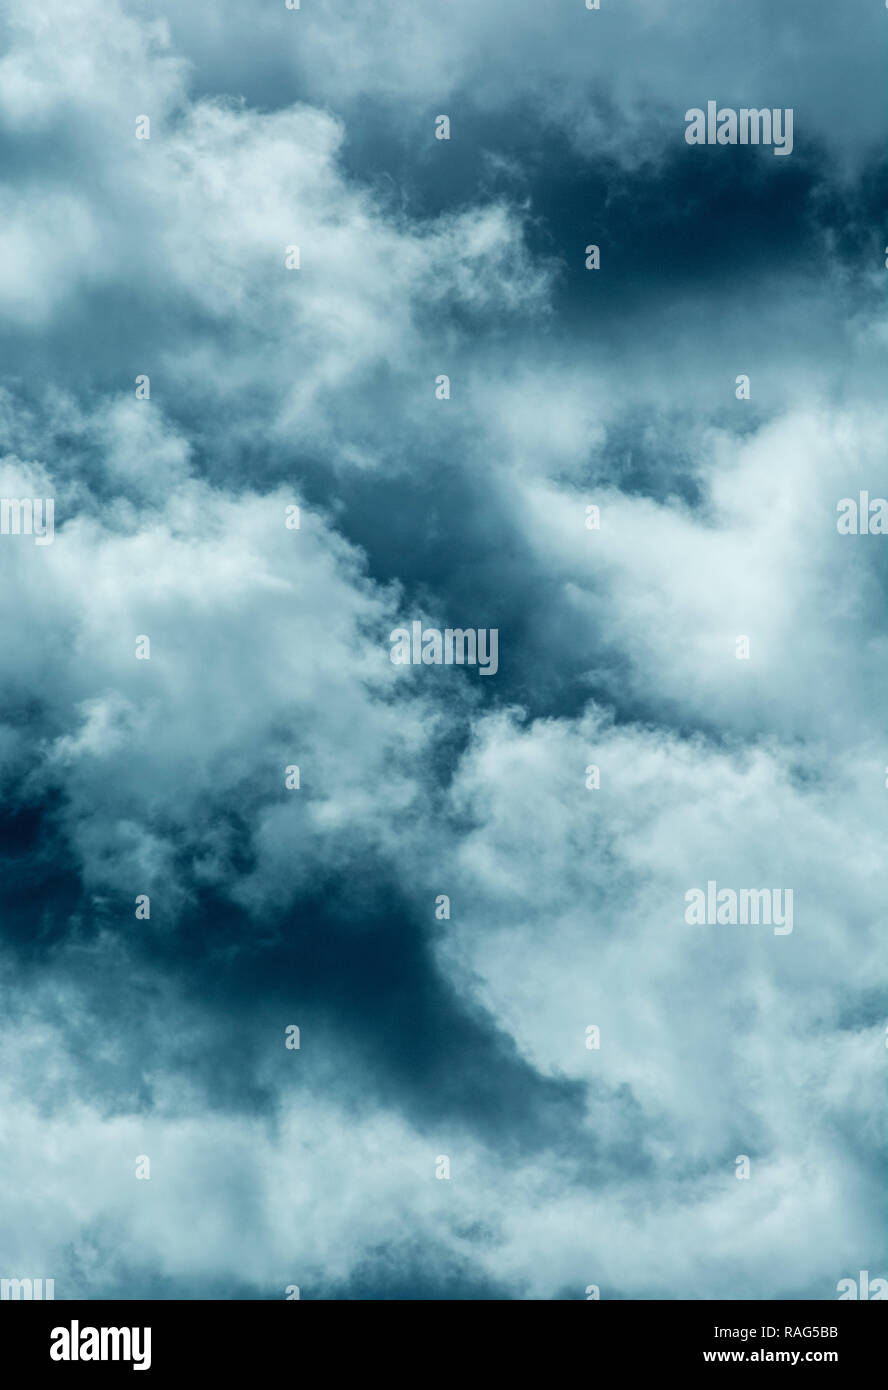 Stylised brooding and dark cloud formations (C/T digitally altered to produce green blue effect). Metaphor economic clouds, clouds on the horizon. - Stock Image